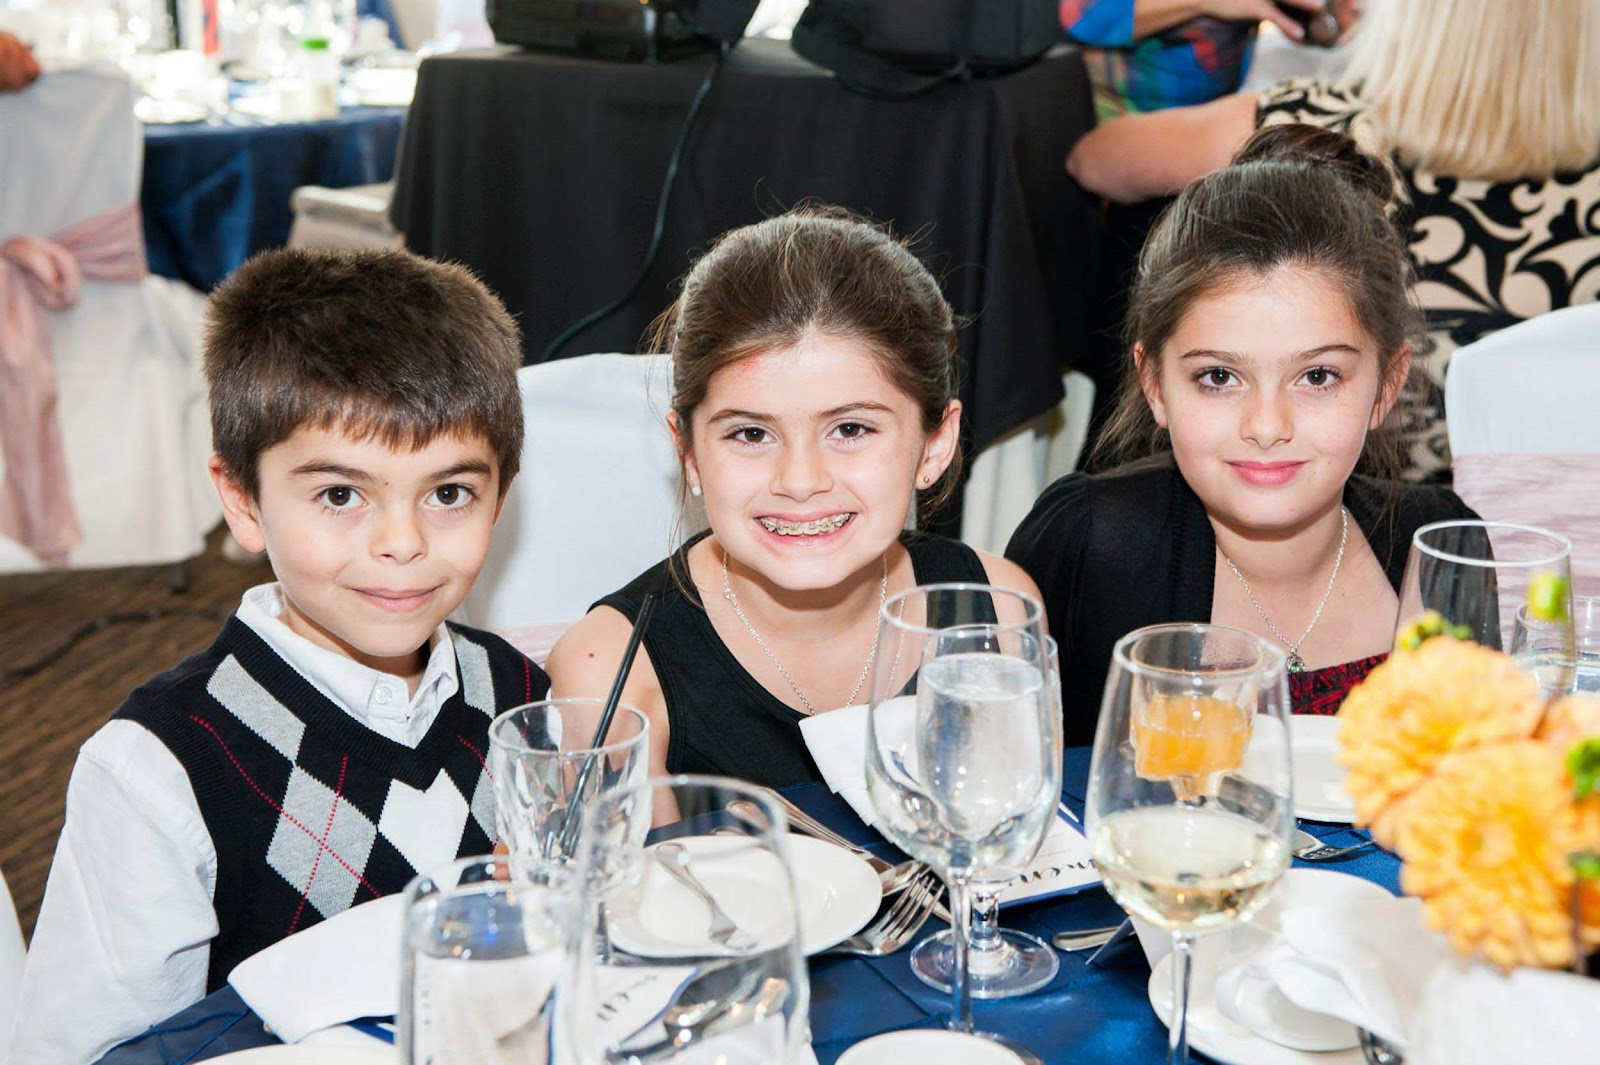 Dersim, 7, Rojevahn, 9, and Sharvahn, 11, at a wedding.